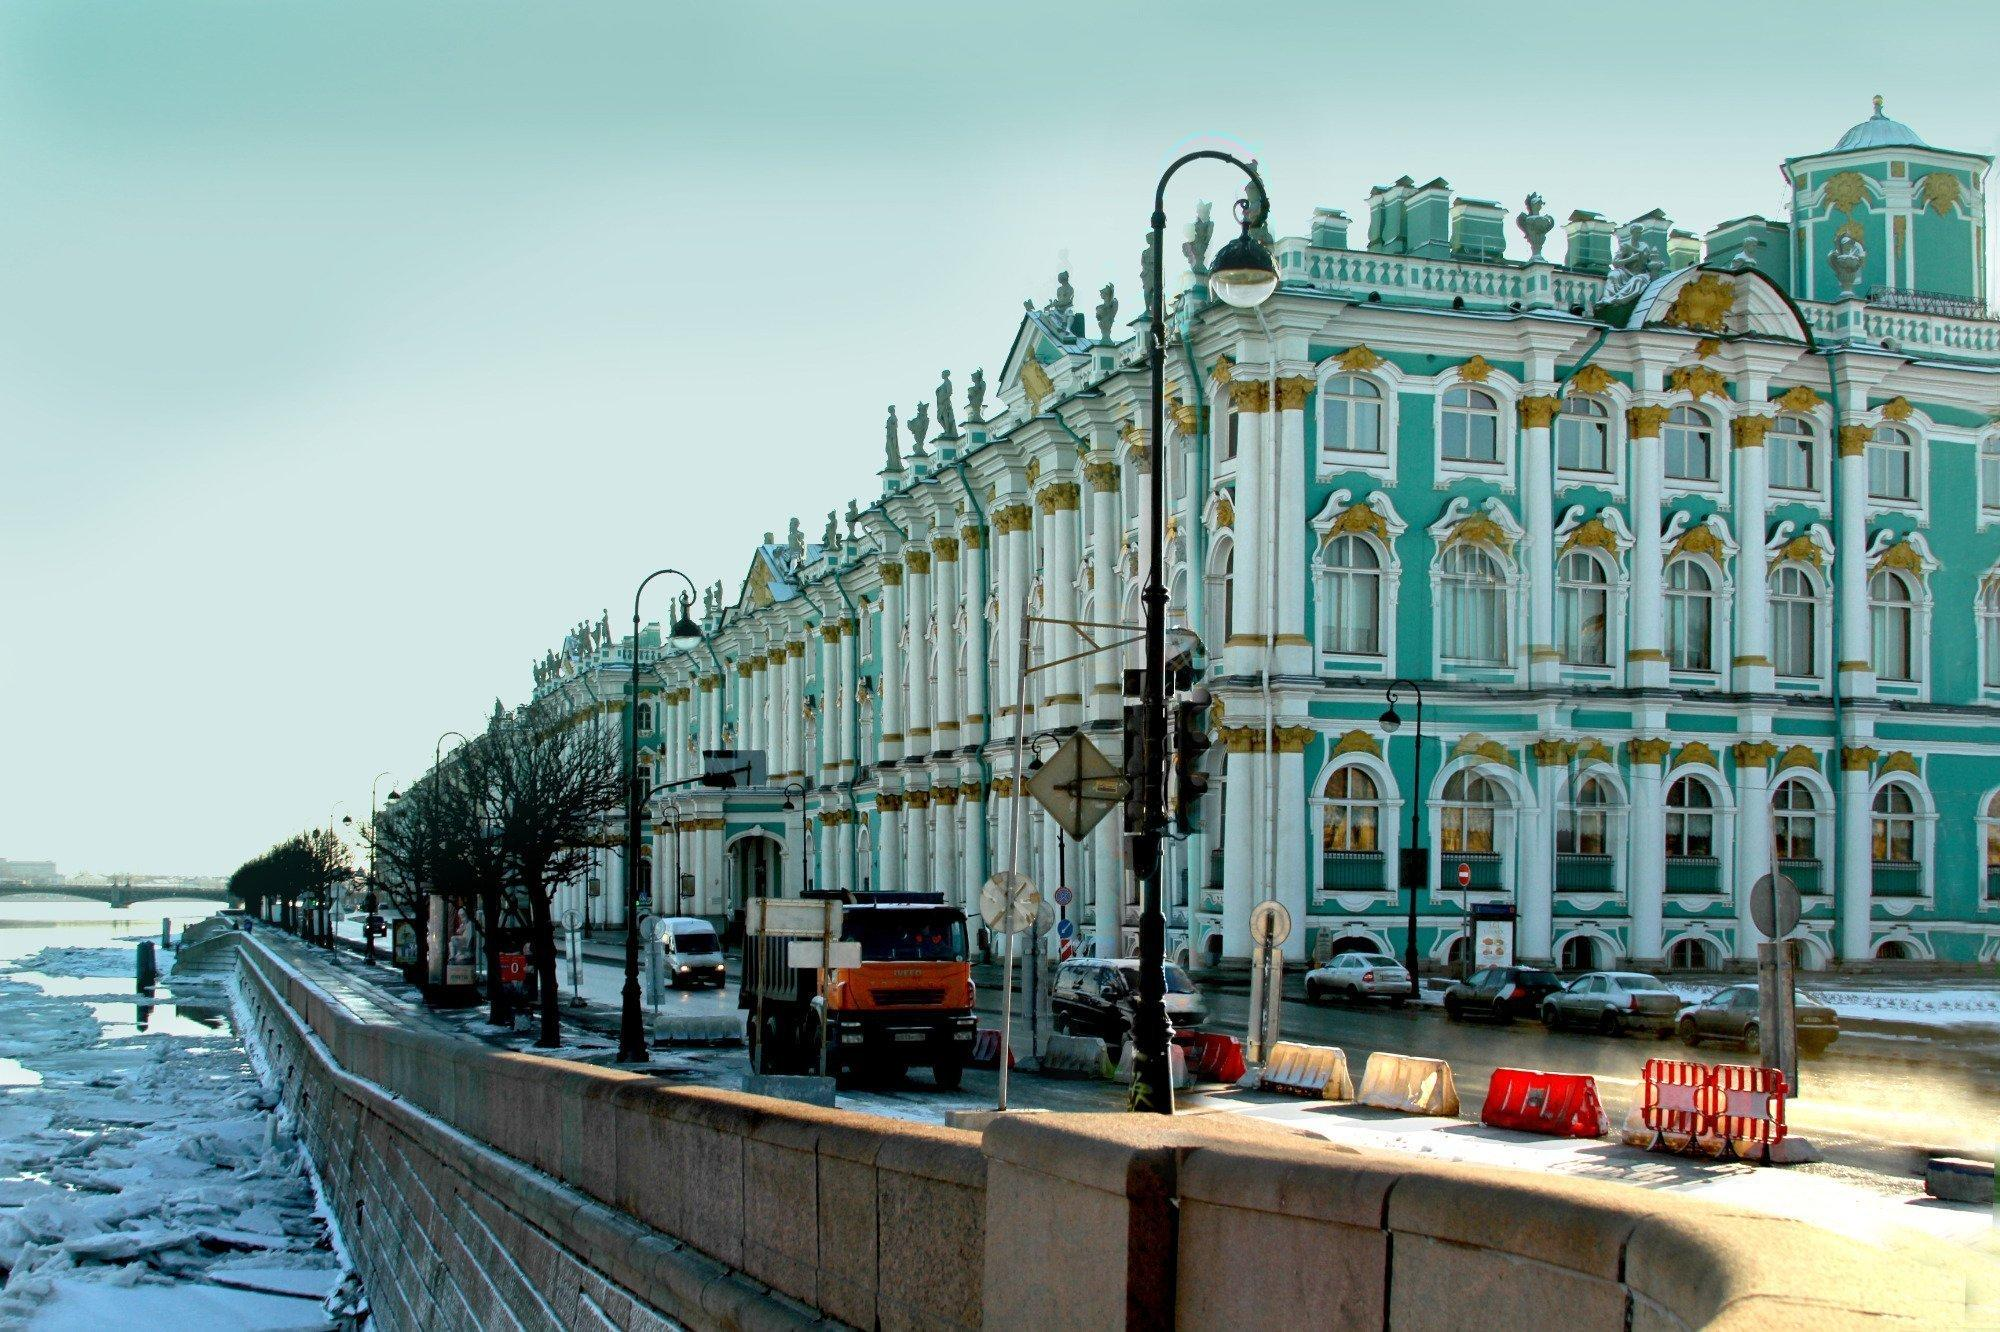 """<p>The <a href=""""http://www.hermitagemuseum.org/wps/portal/hermitage/?lng=en"""" target=""""_blank"""">State Hermitage </a>was founded in 1764 by Catherine the Great and its current collections are made up of more than three million items. The museum is housed in a complex of six buildings on the Palace Embankment, one of which is the Winter Palace, a former home of Russia emperors.</p>"""